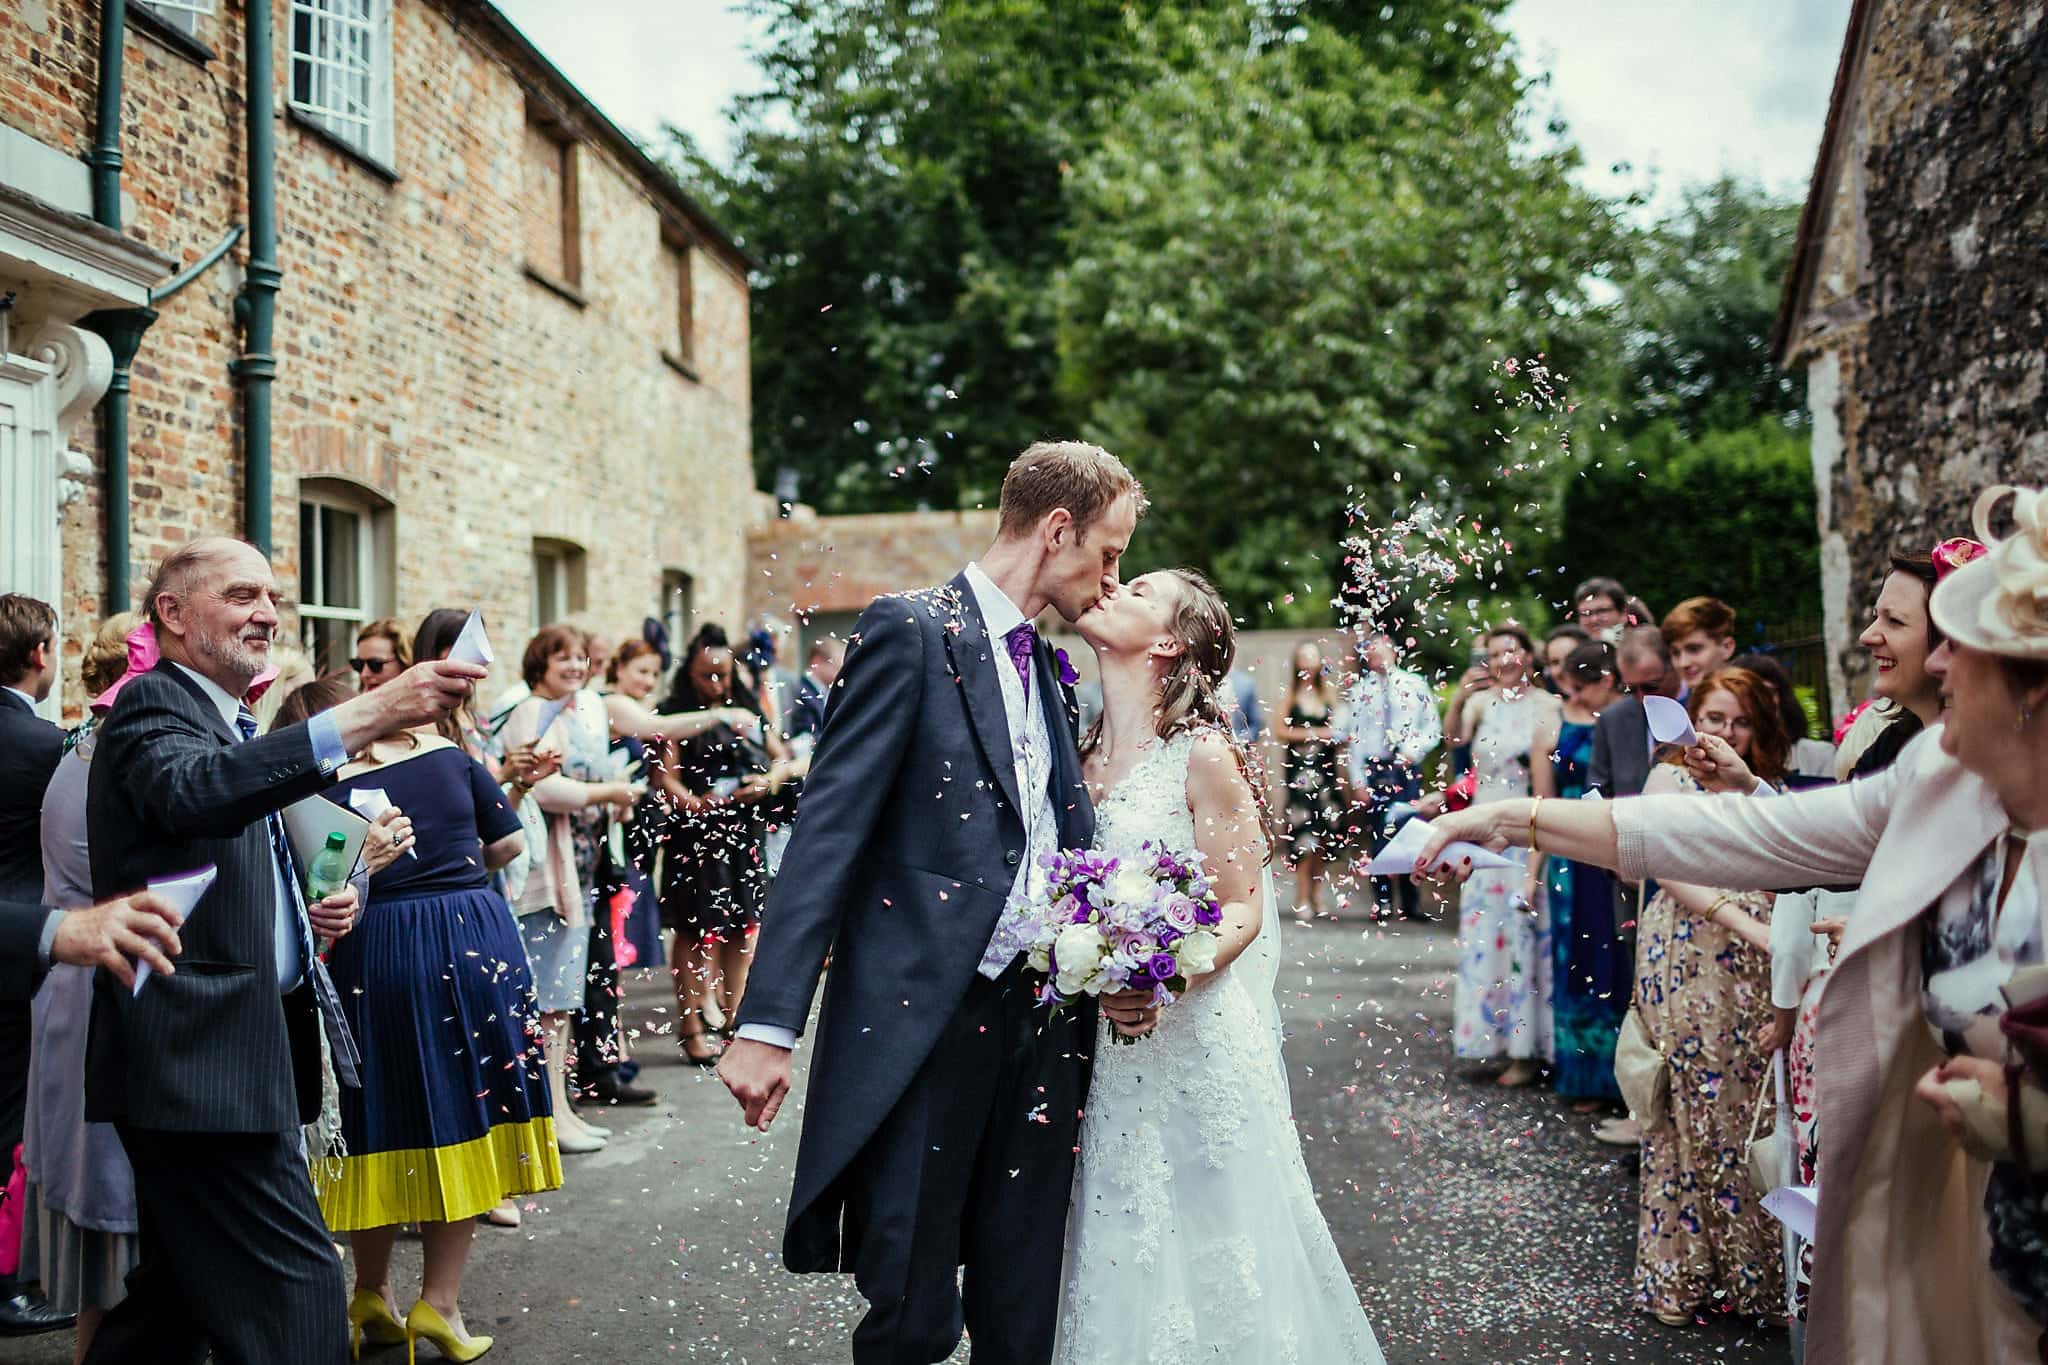 Bride and groom kiss amid purple confetti petals at Dorney Court